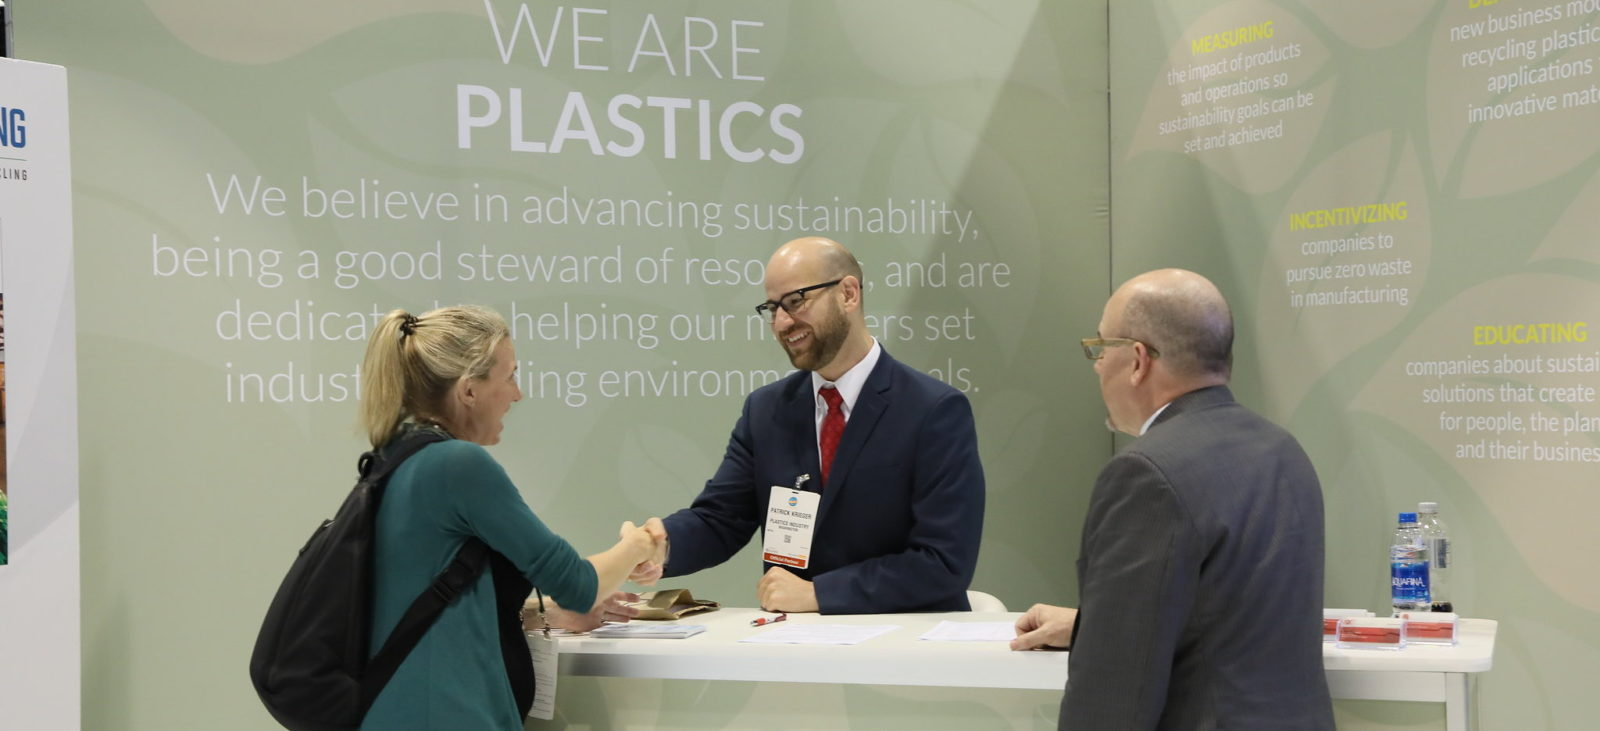 We are PLASTICS welcoming an attendee to the show floor.